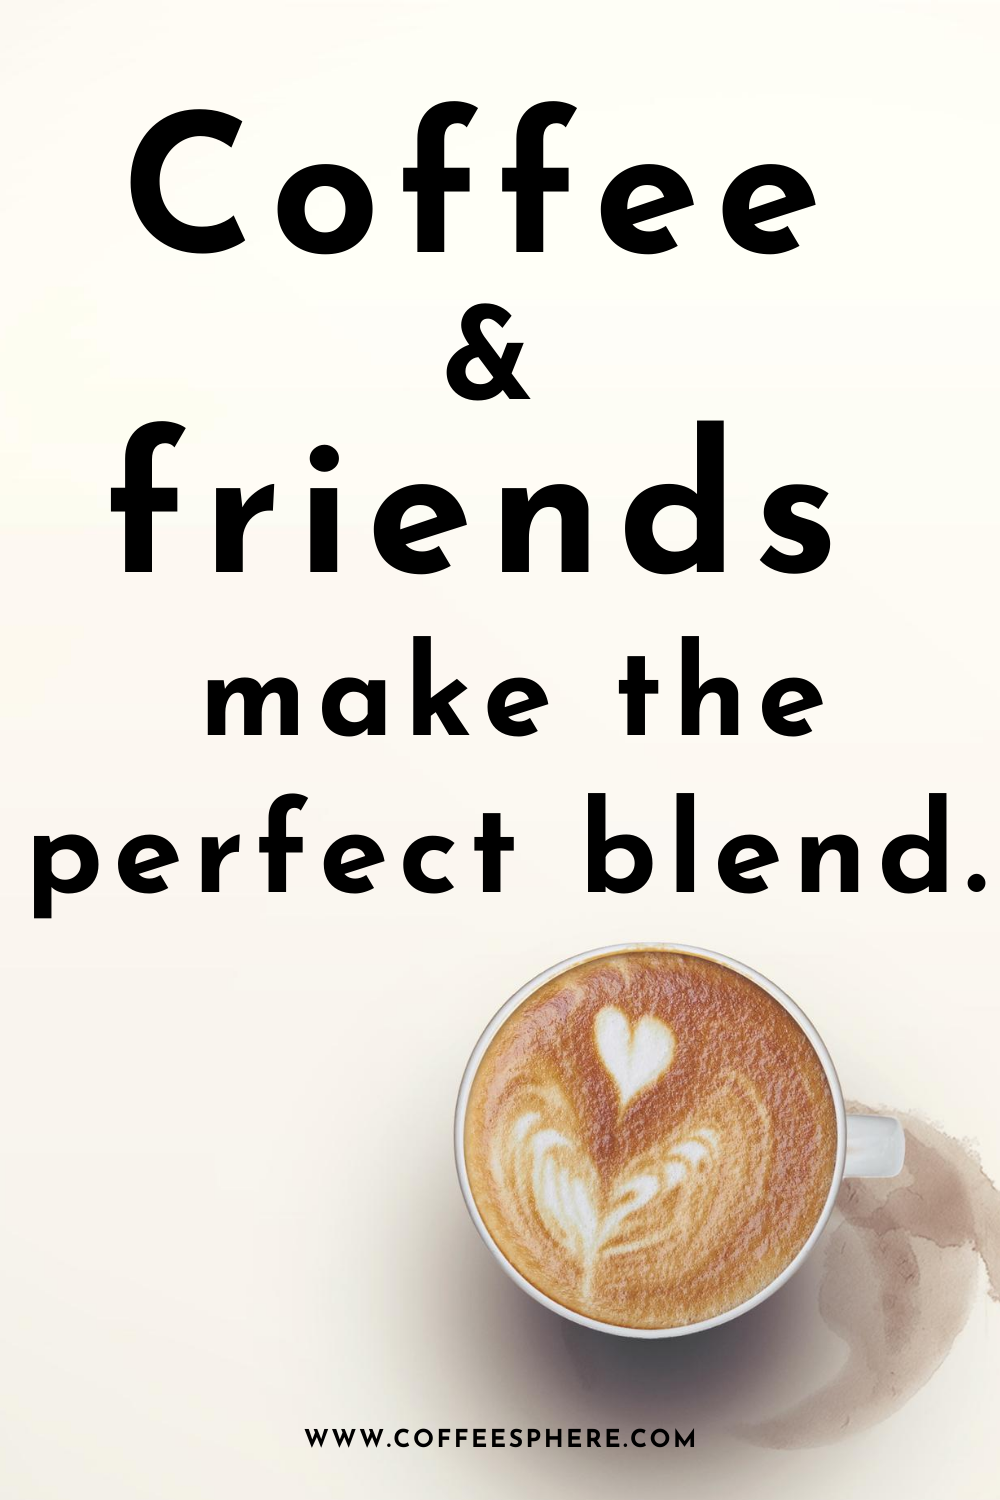 25 Coffee Quotes Funny Coffee Quotes That Will Brighten Your Mood Coffeesphere Funny Coffee Quotes Coffee Quotes Coffee And Friends Quotes